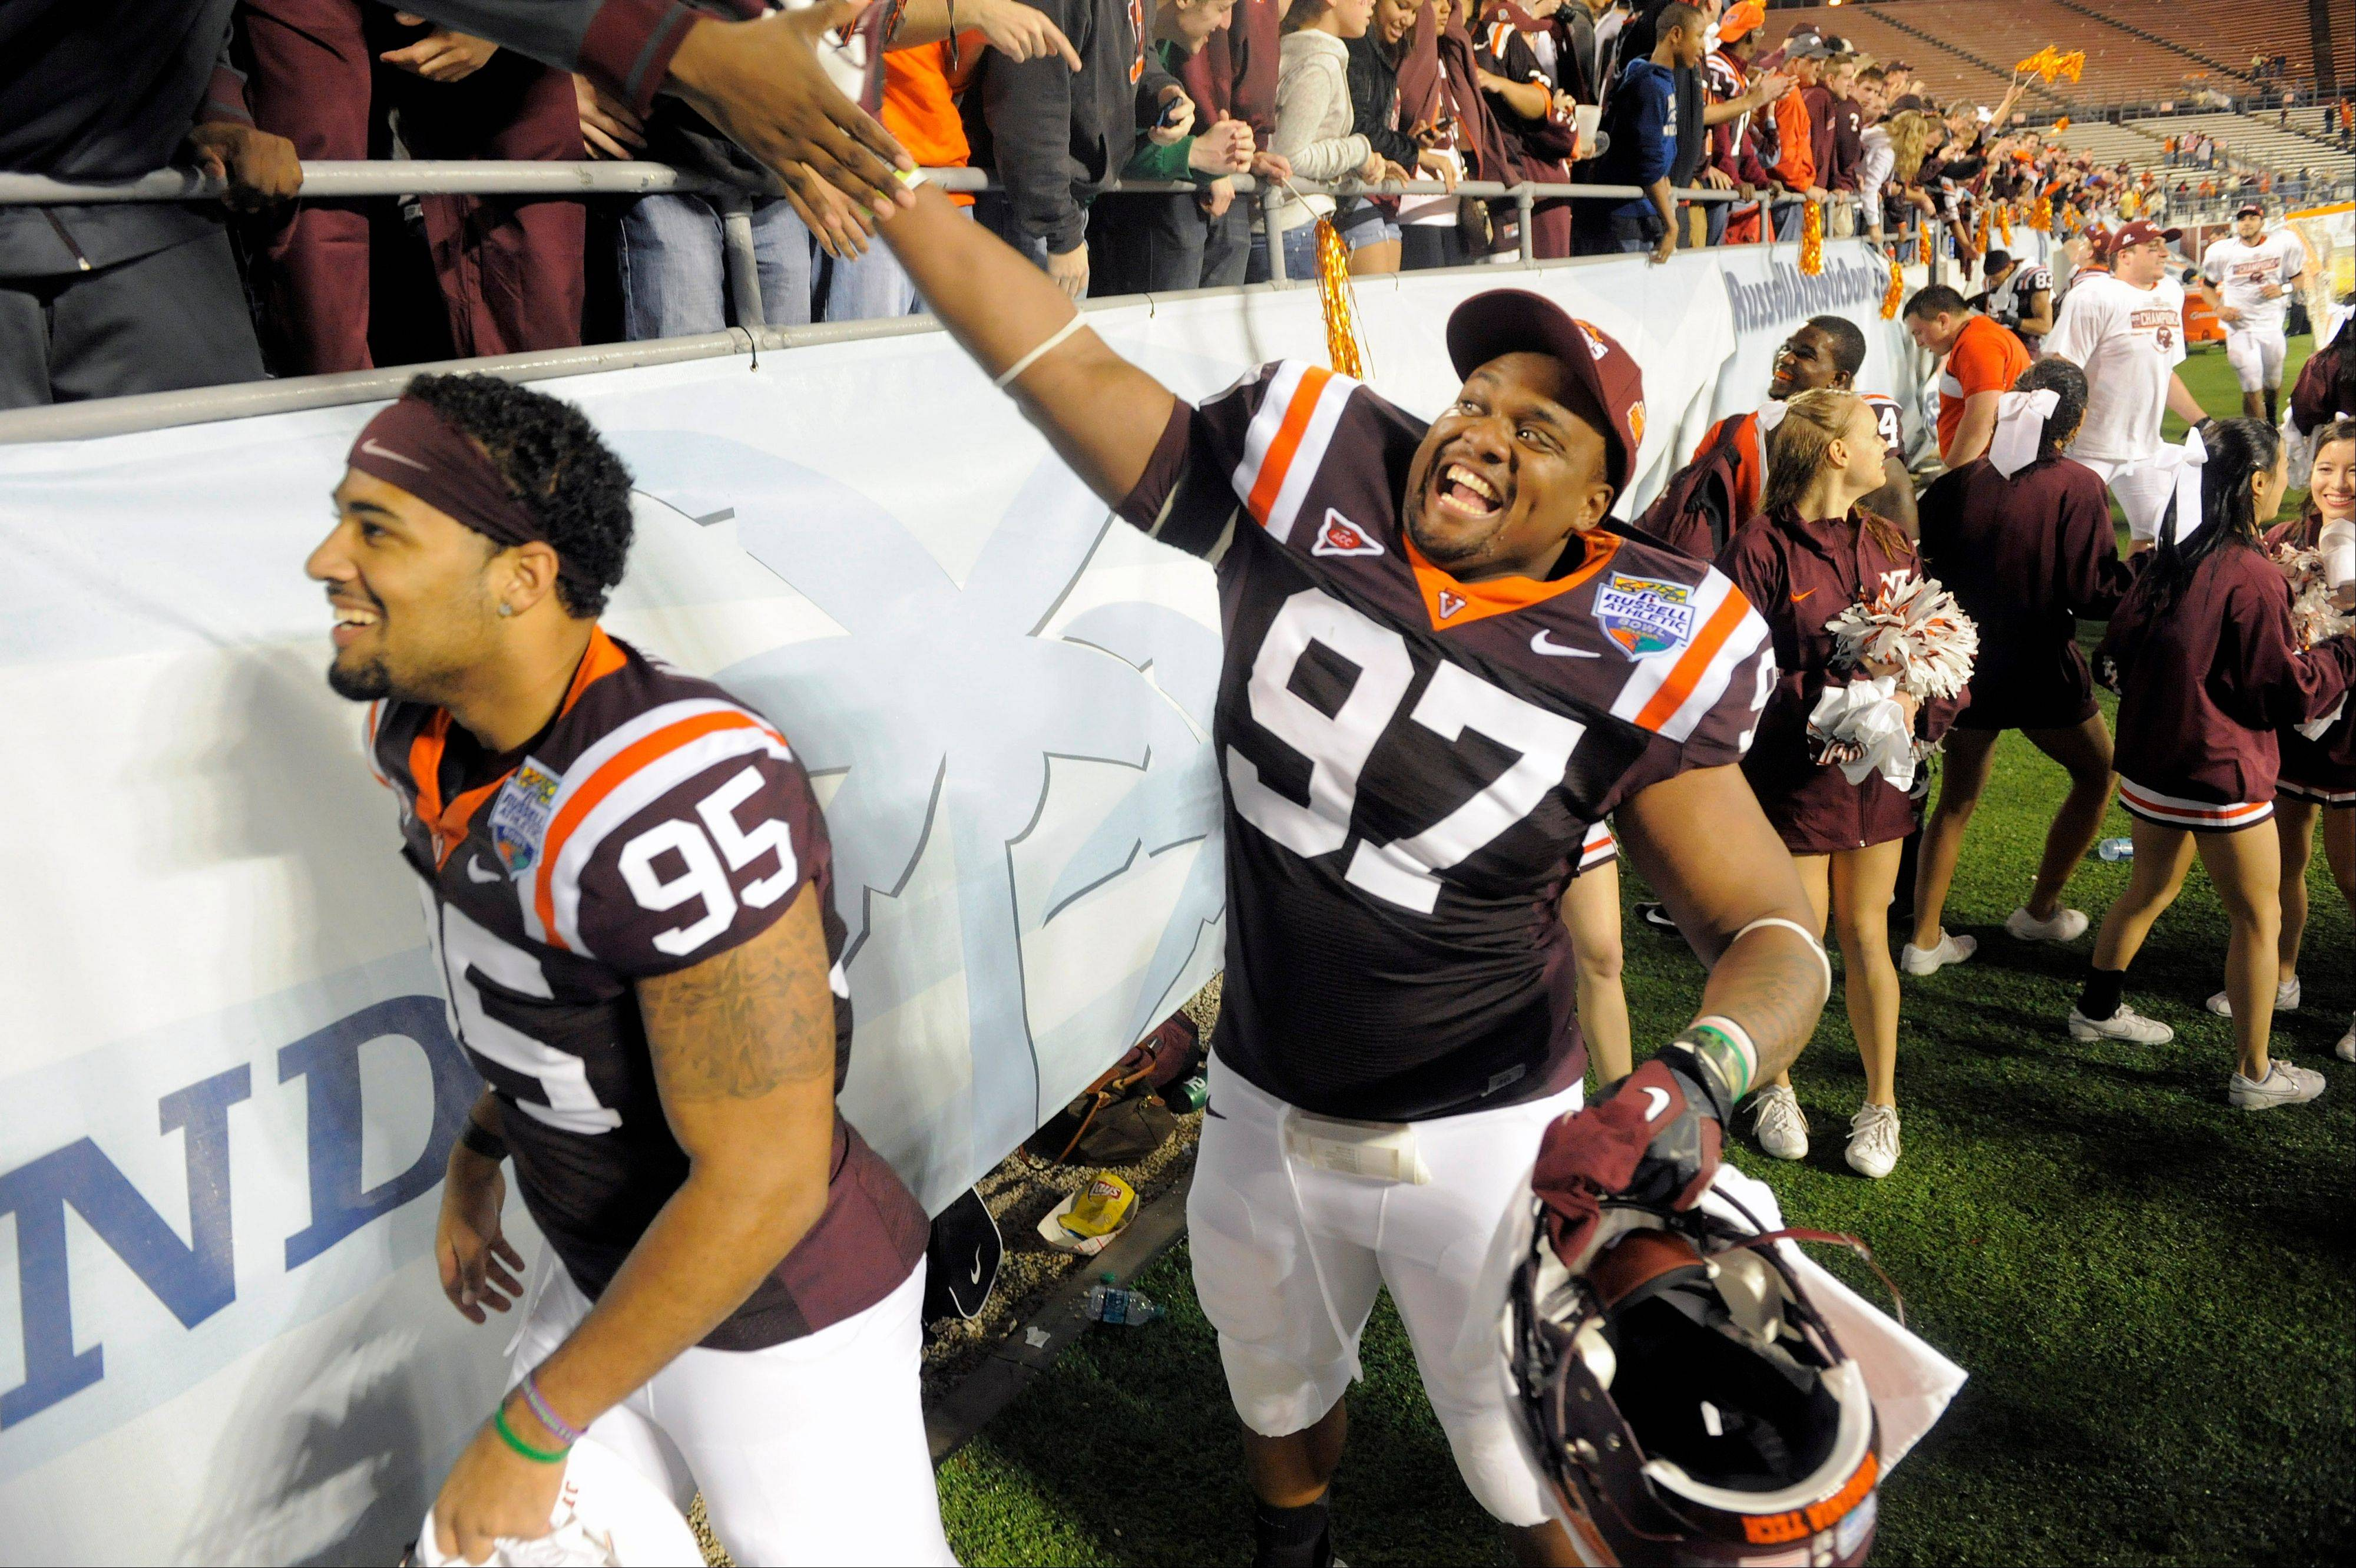 Virginia Tech defensives tackle Zack McCray, left, and Kris Harley, right, celebrate with fans Friday following their 13-10 win in overtime of the Russell Athletic Bowl game against Rutgers in Orlando, Fla.